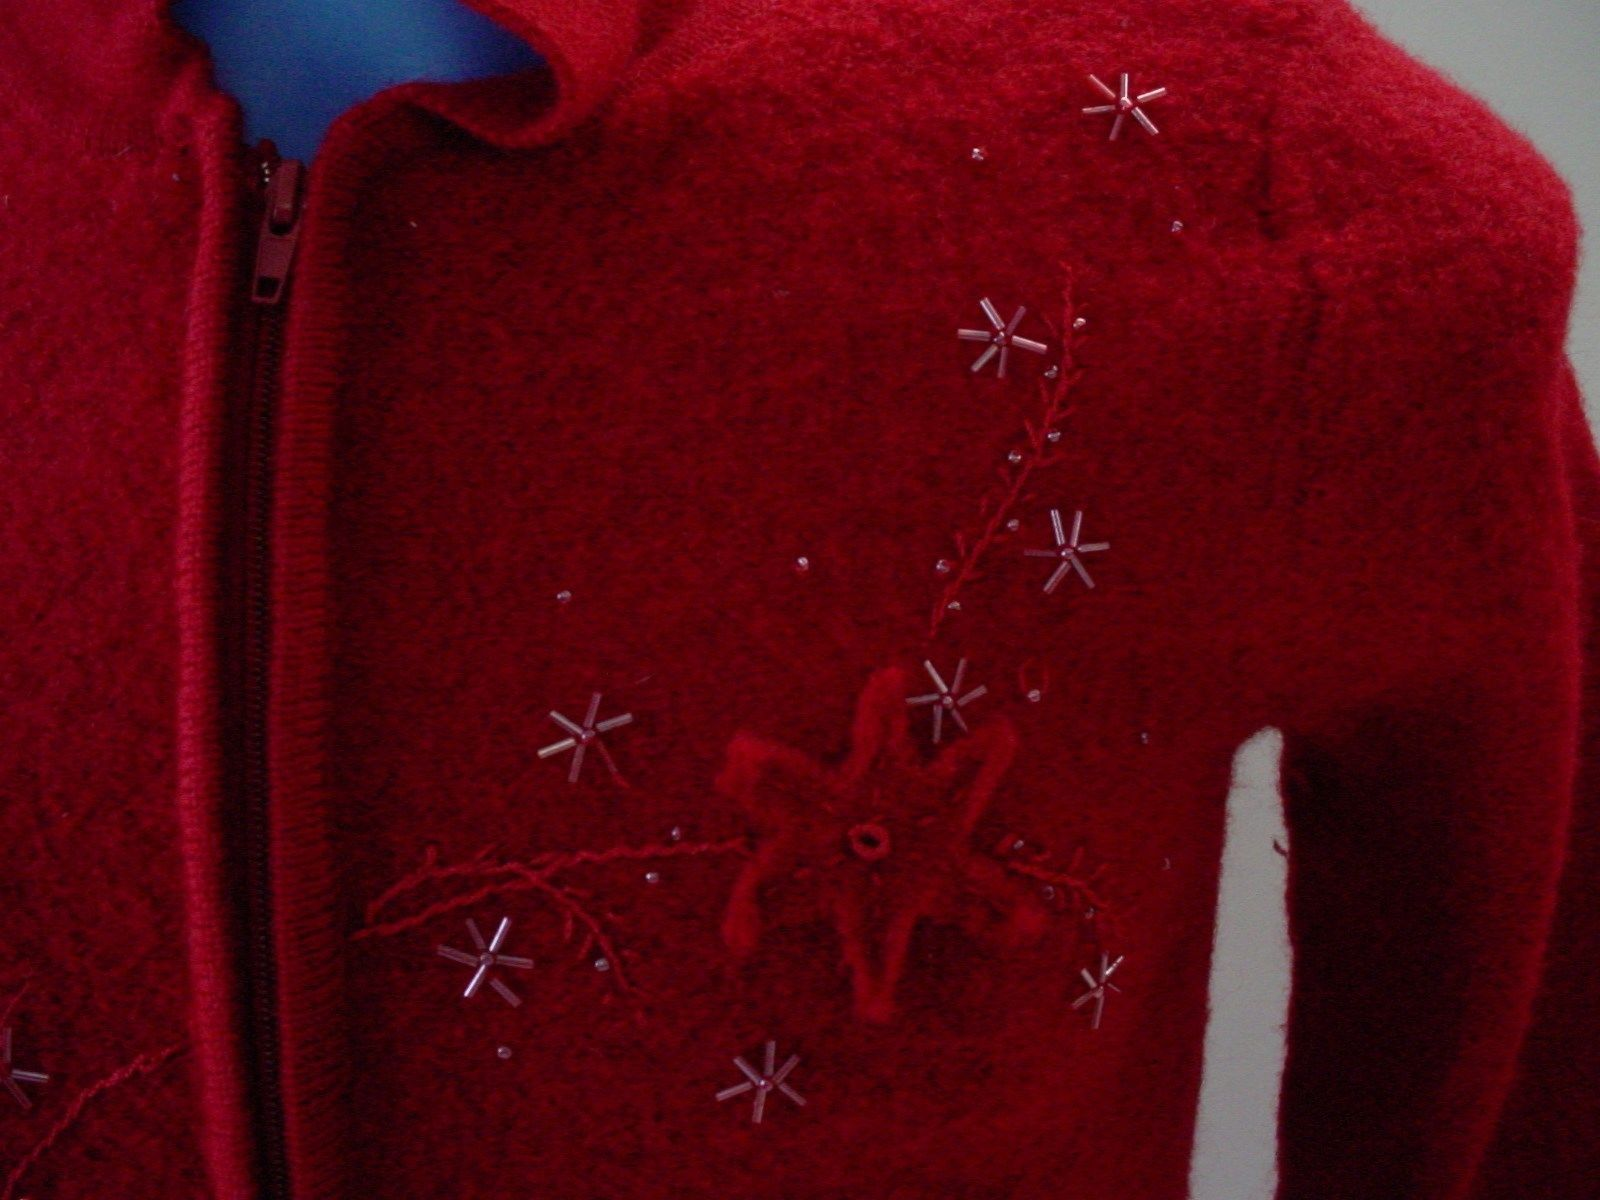 f861cc83e5c Dress Barn Ugly Christmas Sweater Zip Up Turtle Neck Red Size M